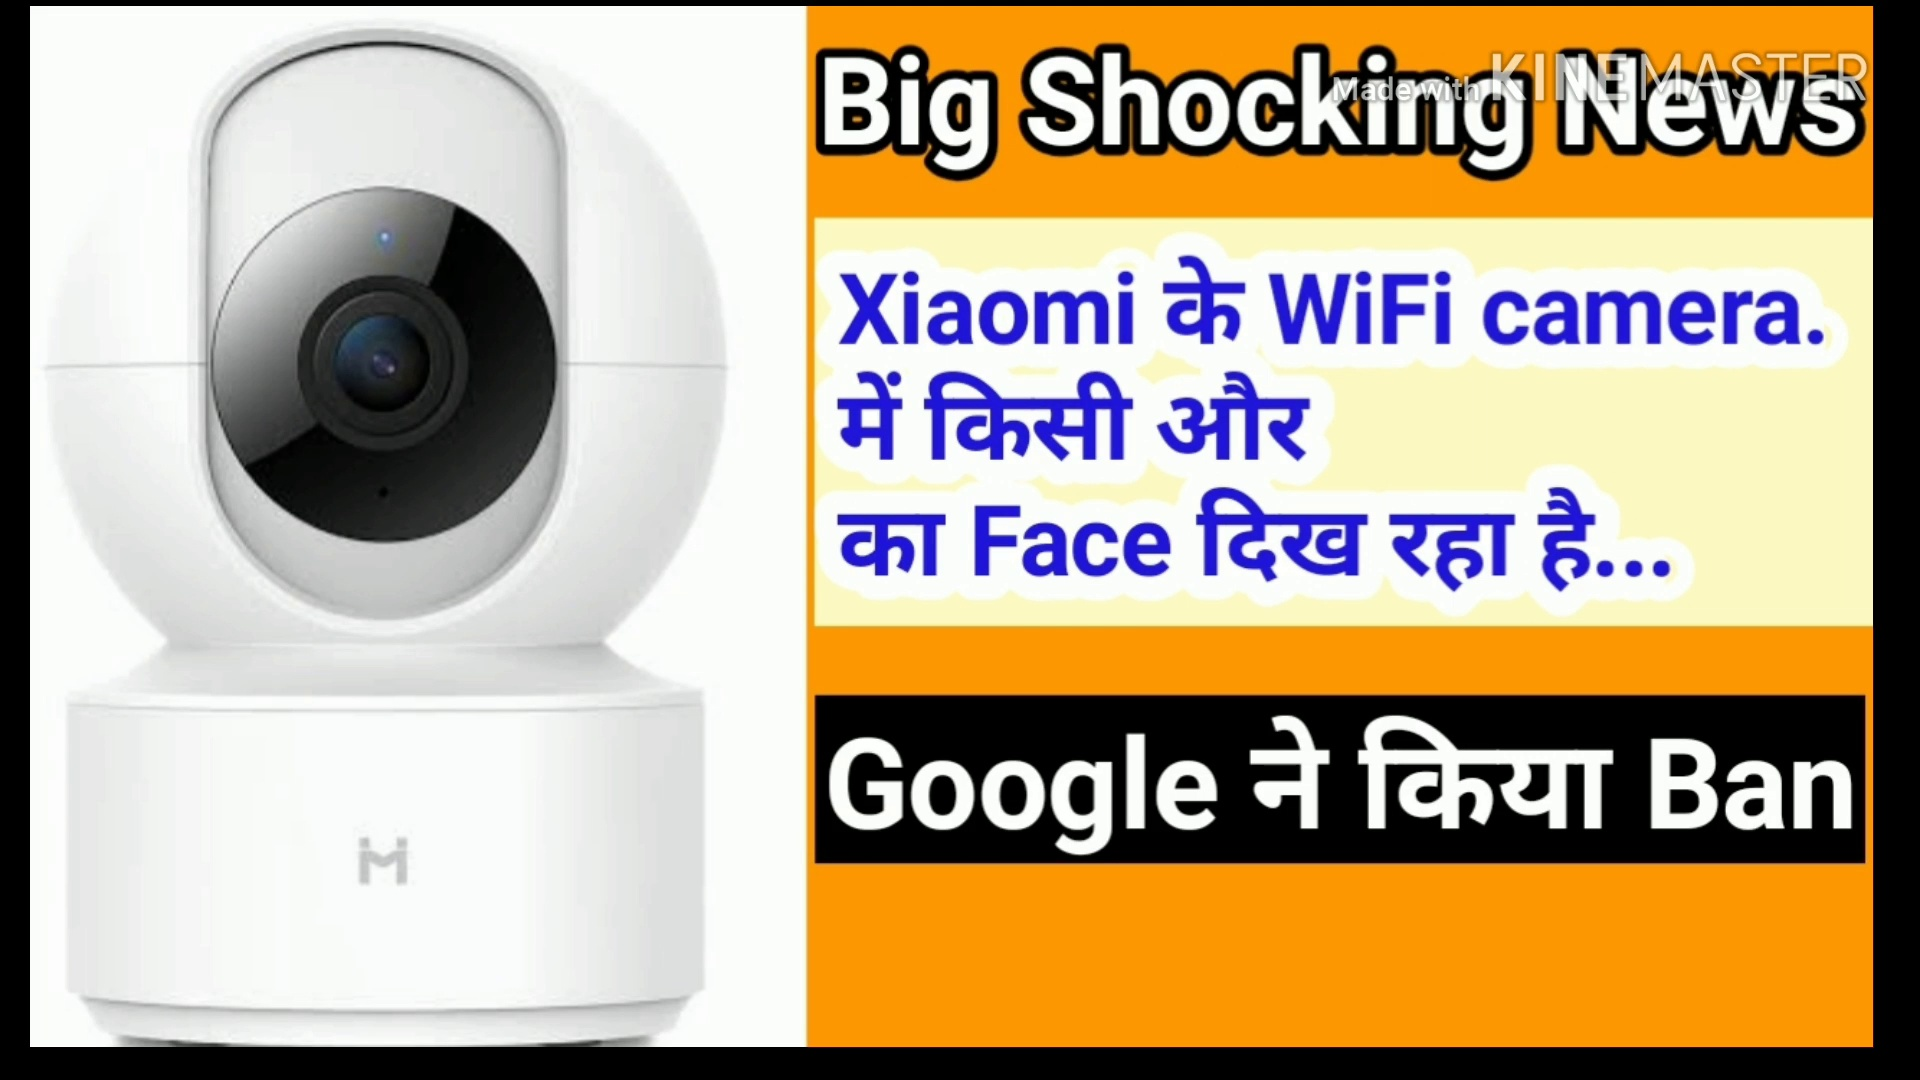 Xiaomi WiFi camera Has big Security issue !!  WiFi camera security problem with Google Nest